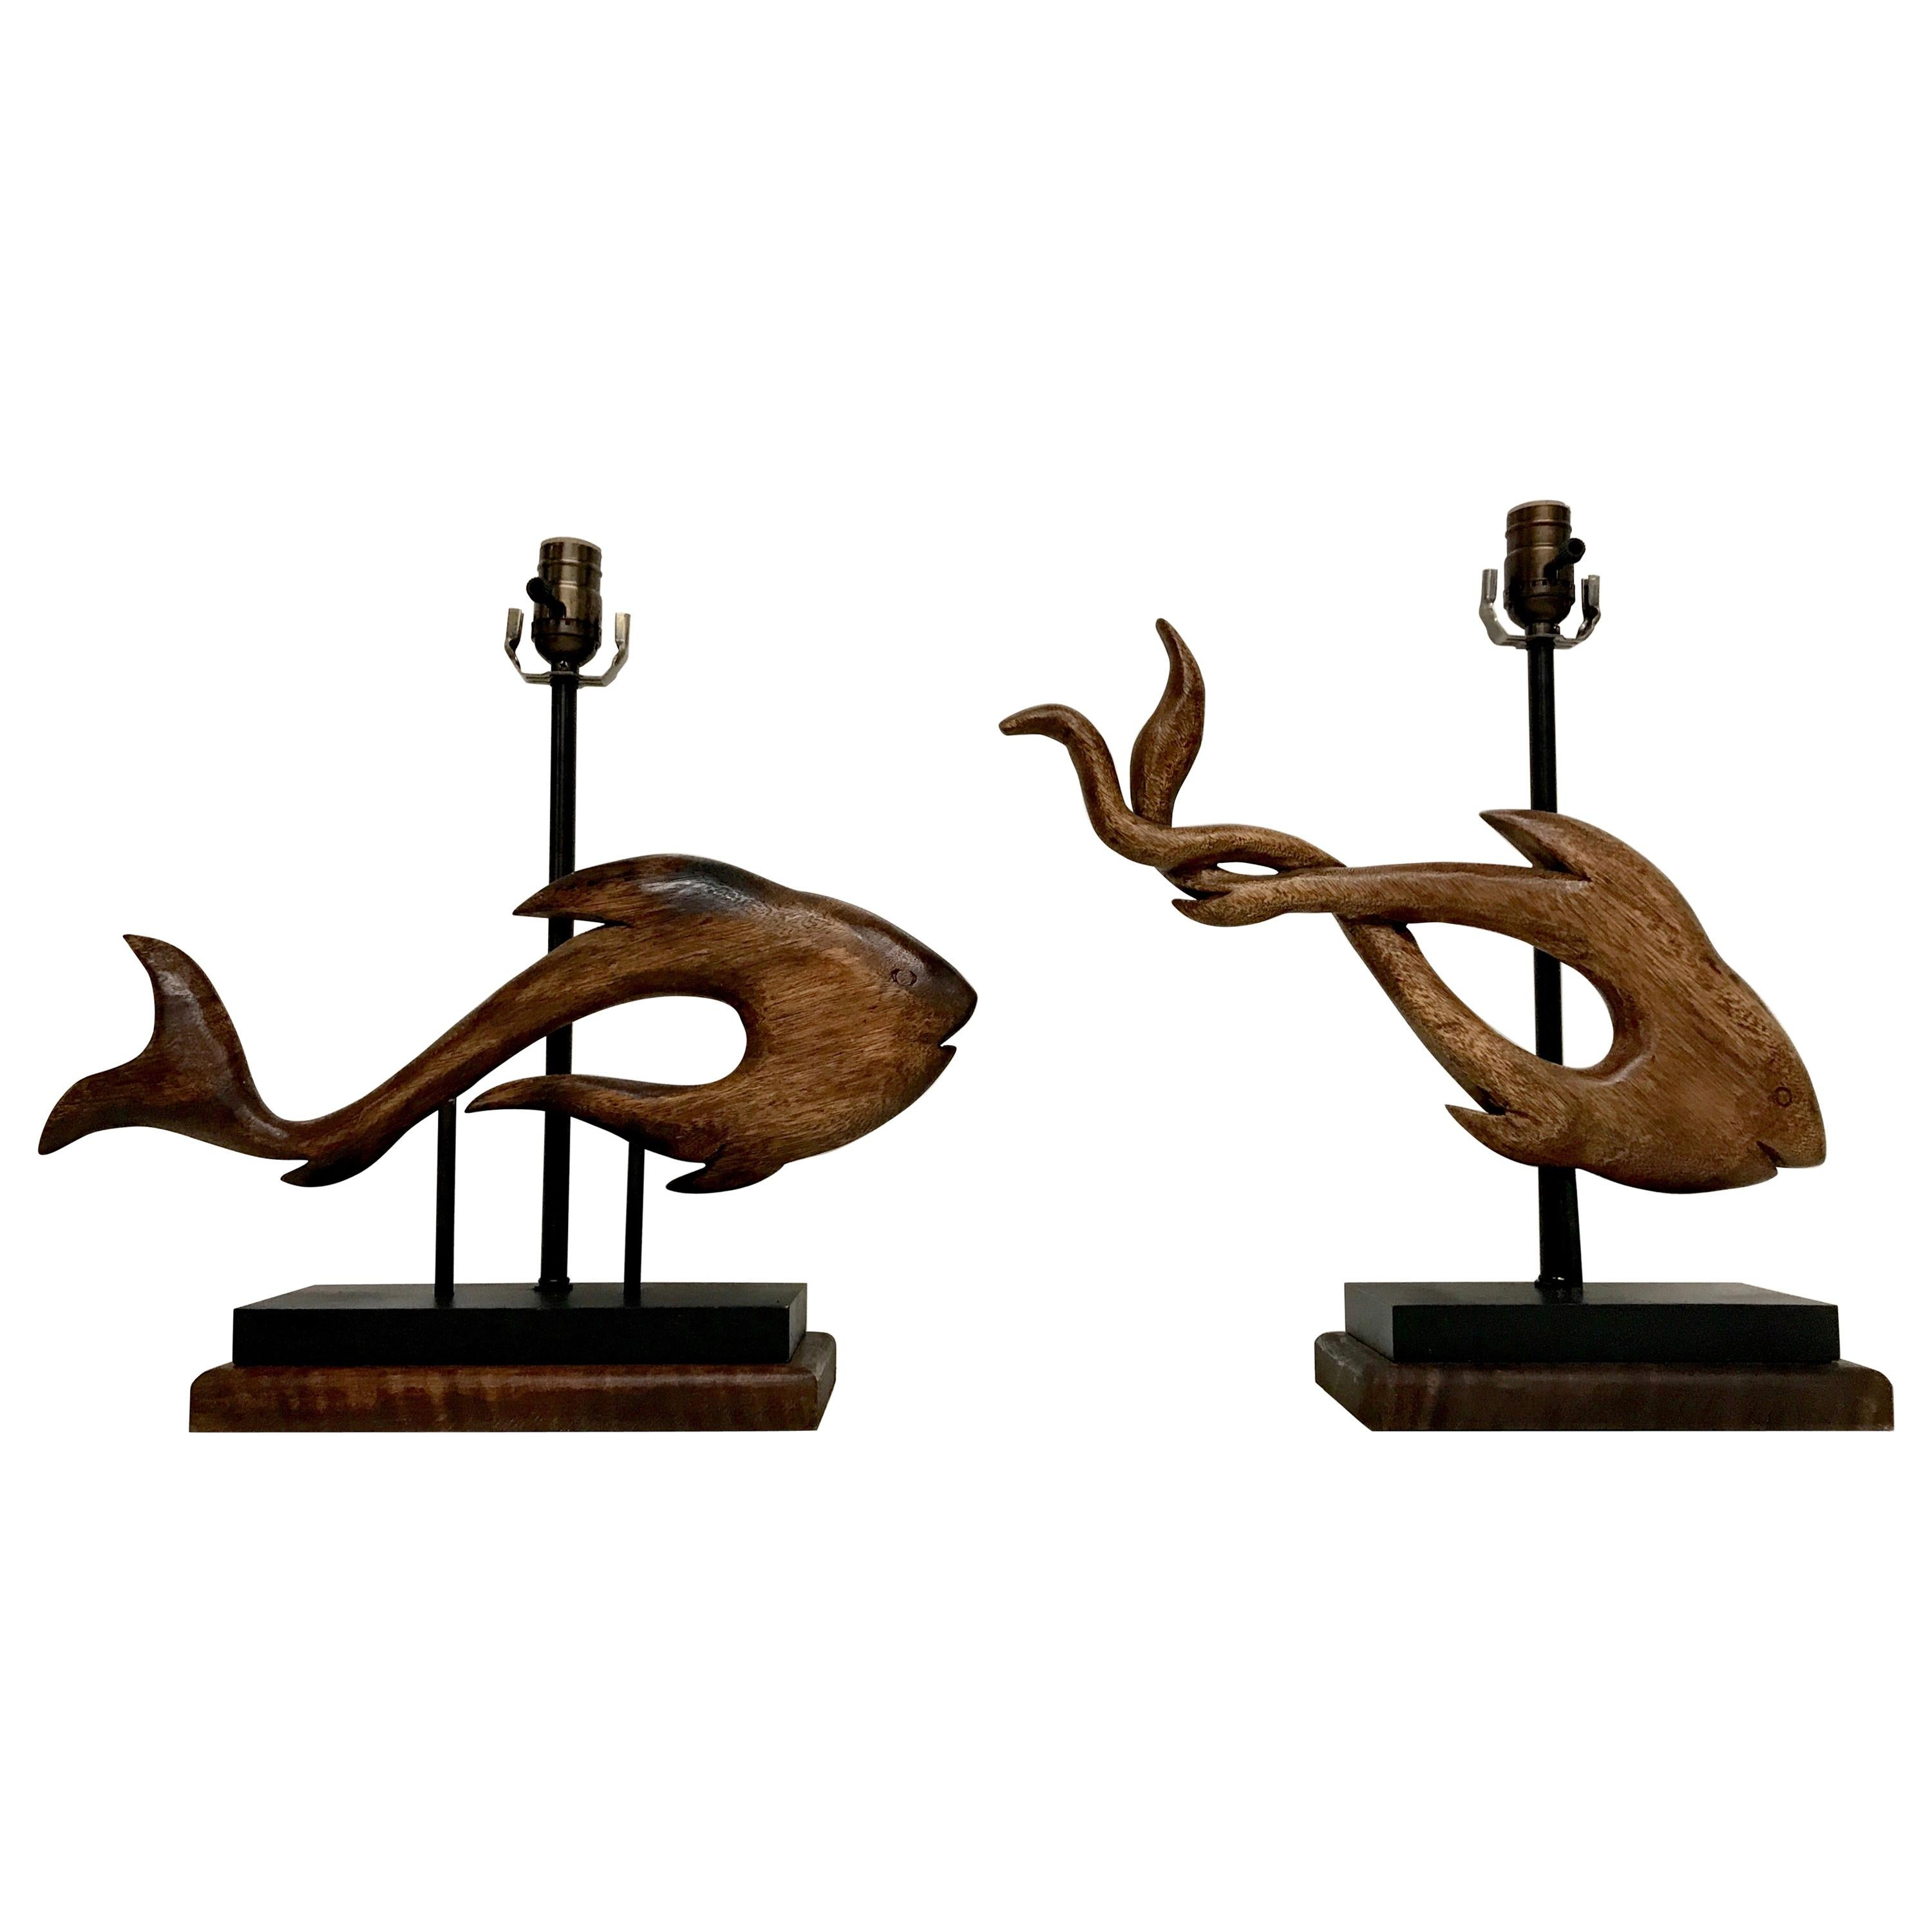 Pair of Midcentury Carved Wood Fish Sculptures Now as Lamps